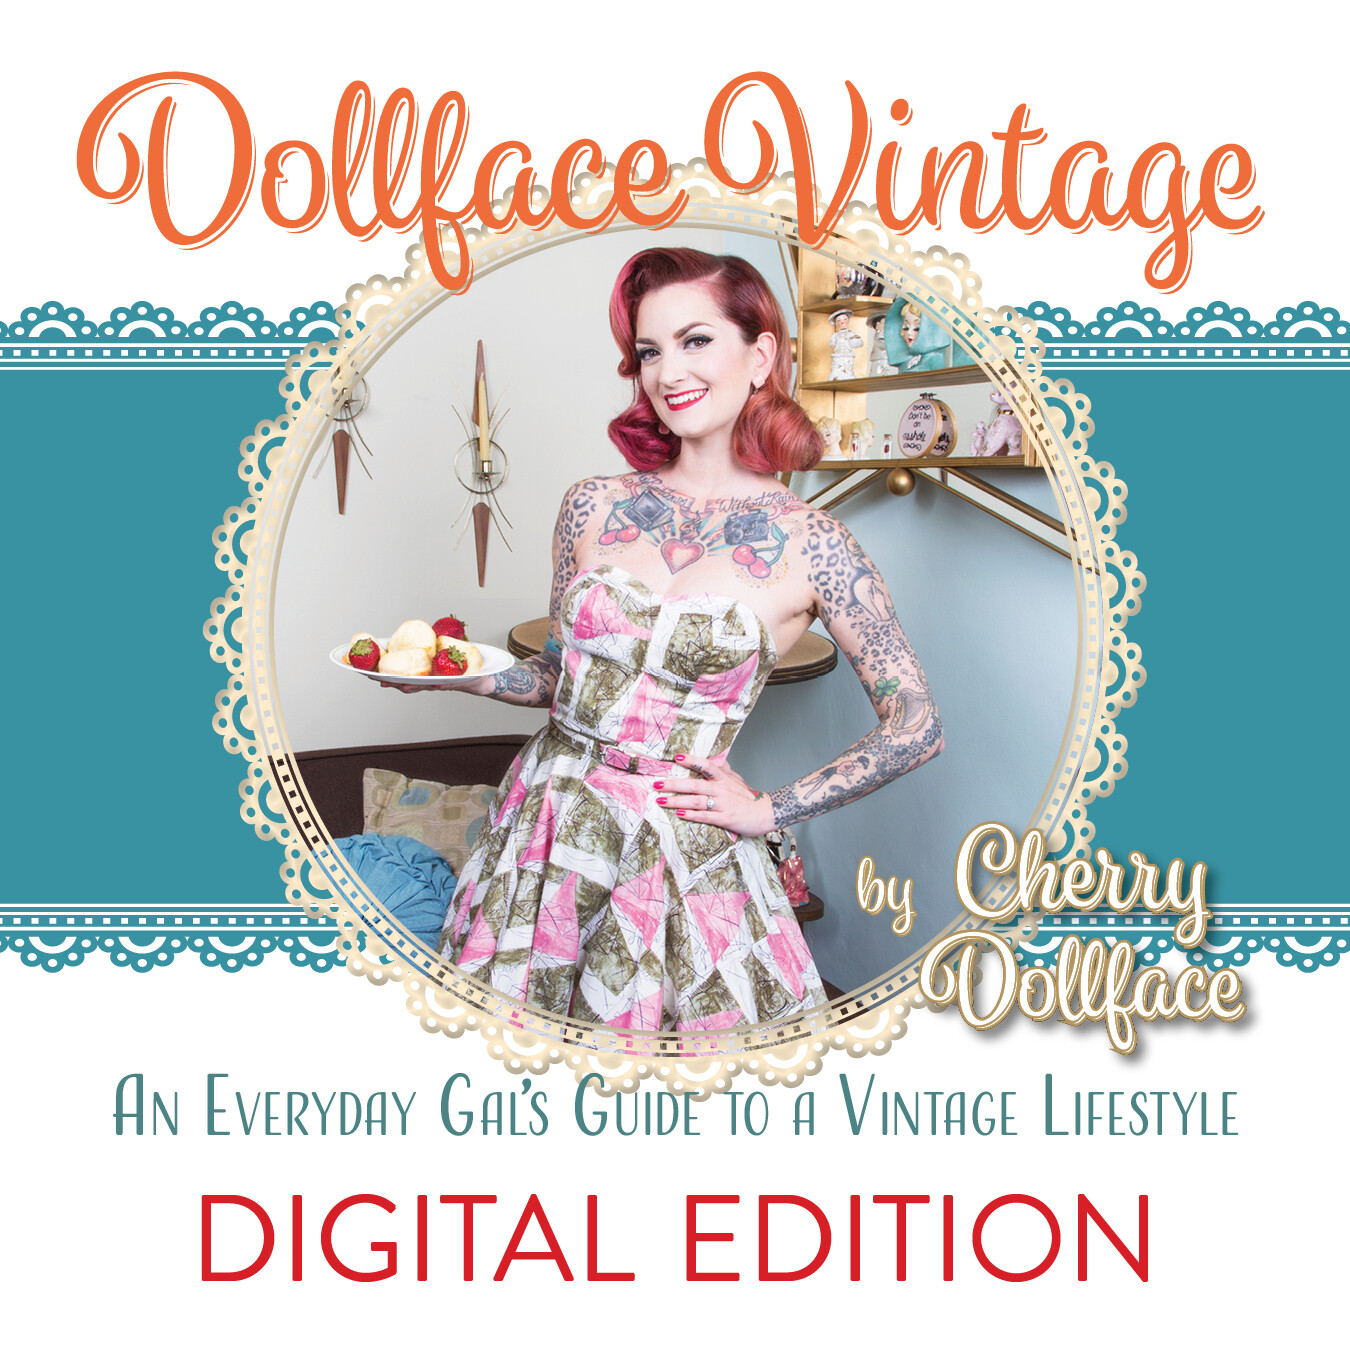 Dollface Vintage DIGITAL EDITION (for PC/Android)